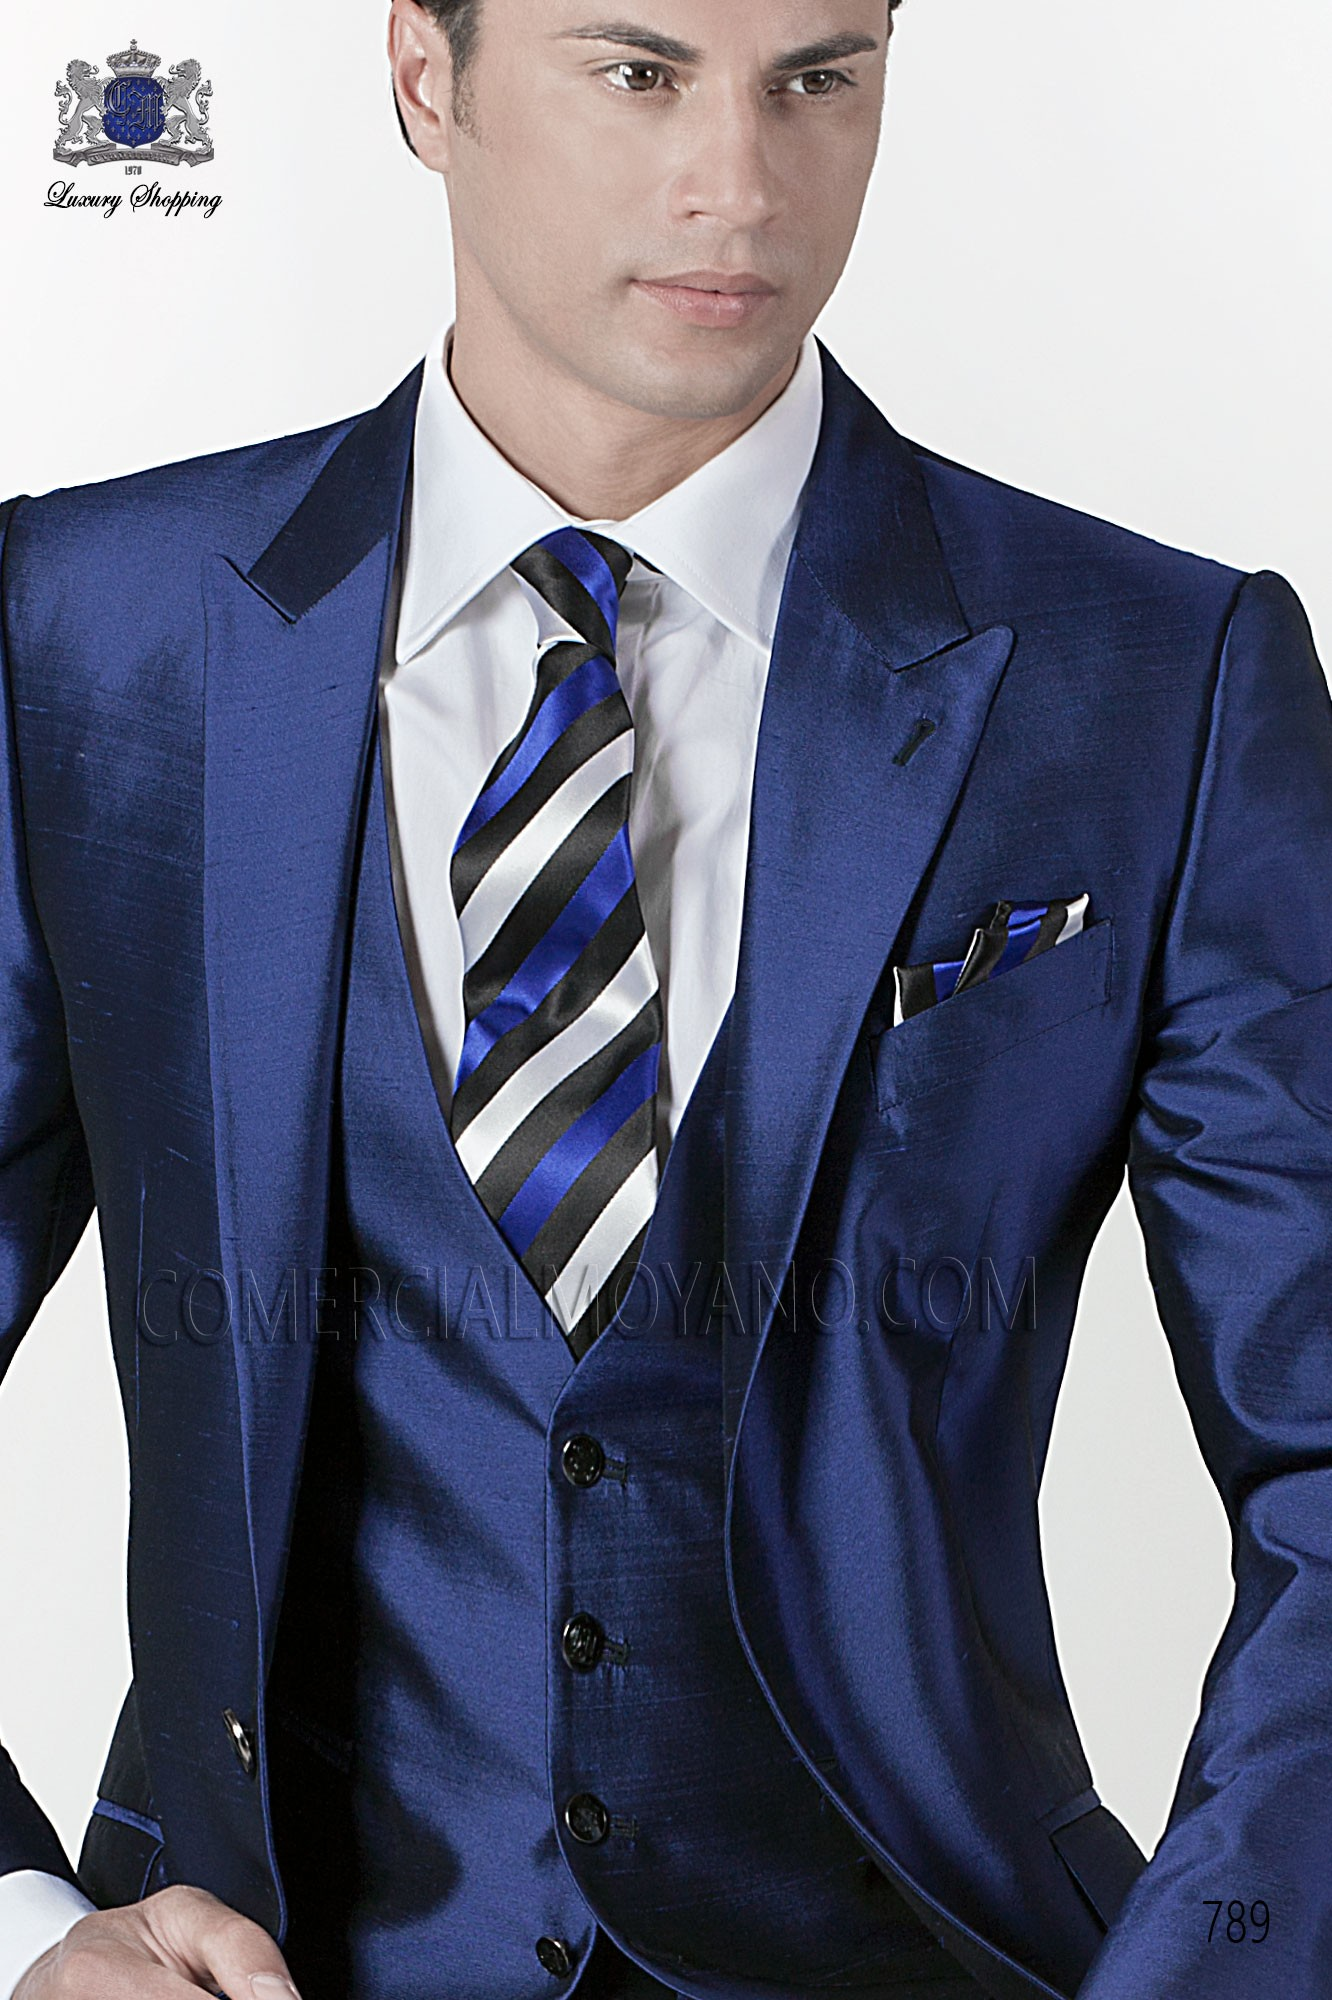 Blue-black striped tie with matching pocket handkerchief ONGala